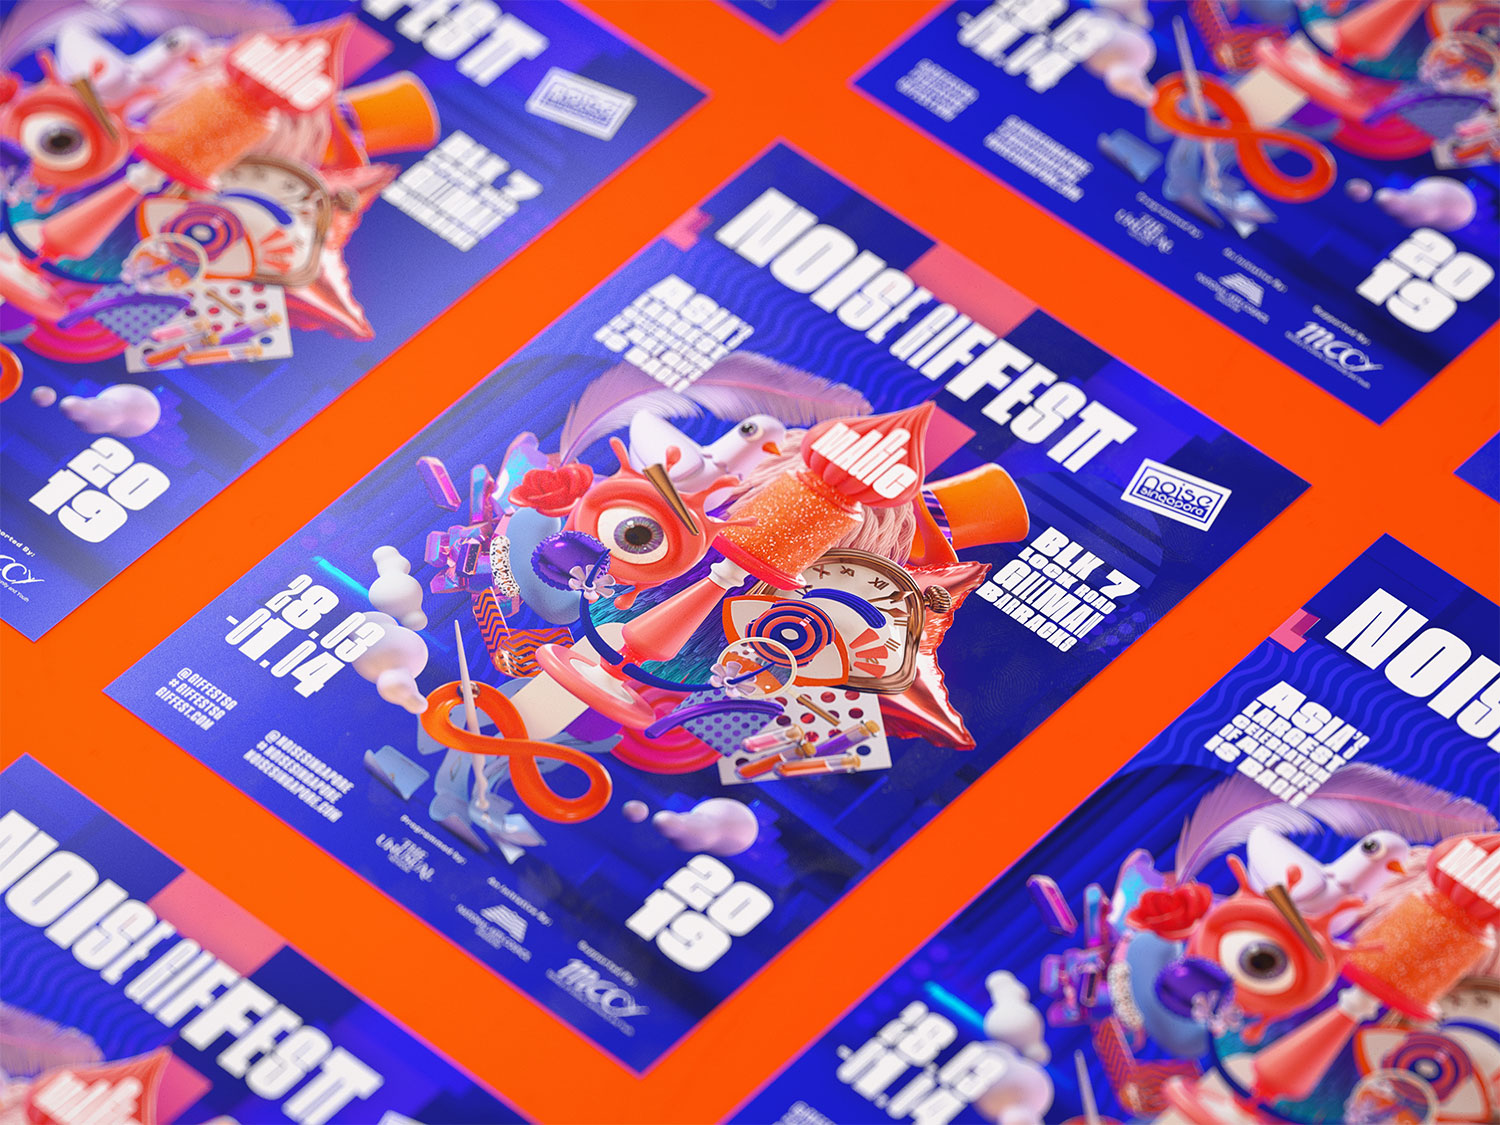 GIF Fest II 2019 festival branding identity - A5 Event Flyers.